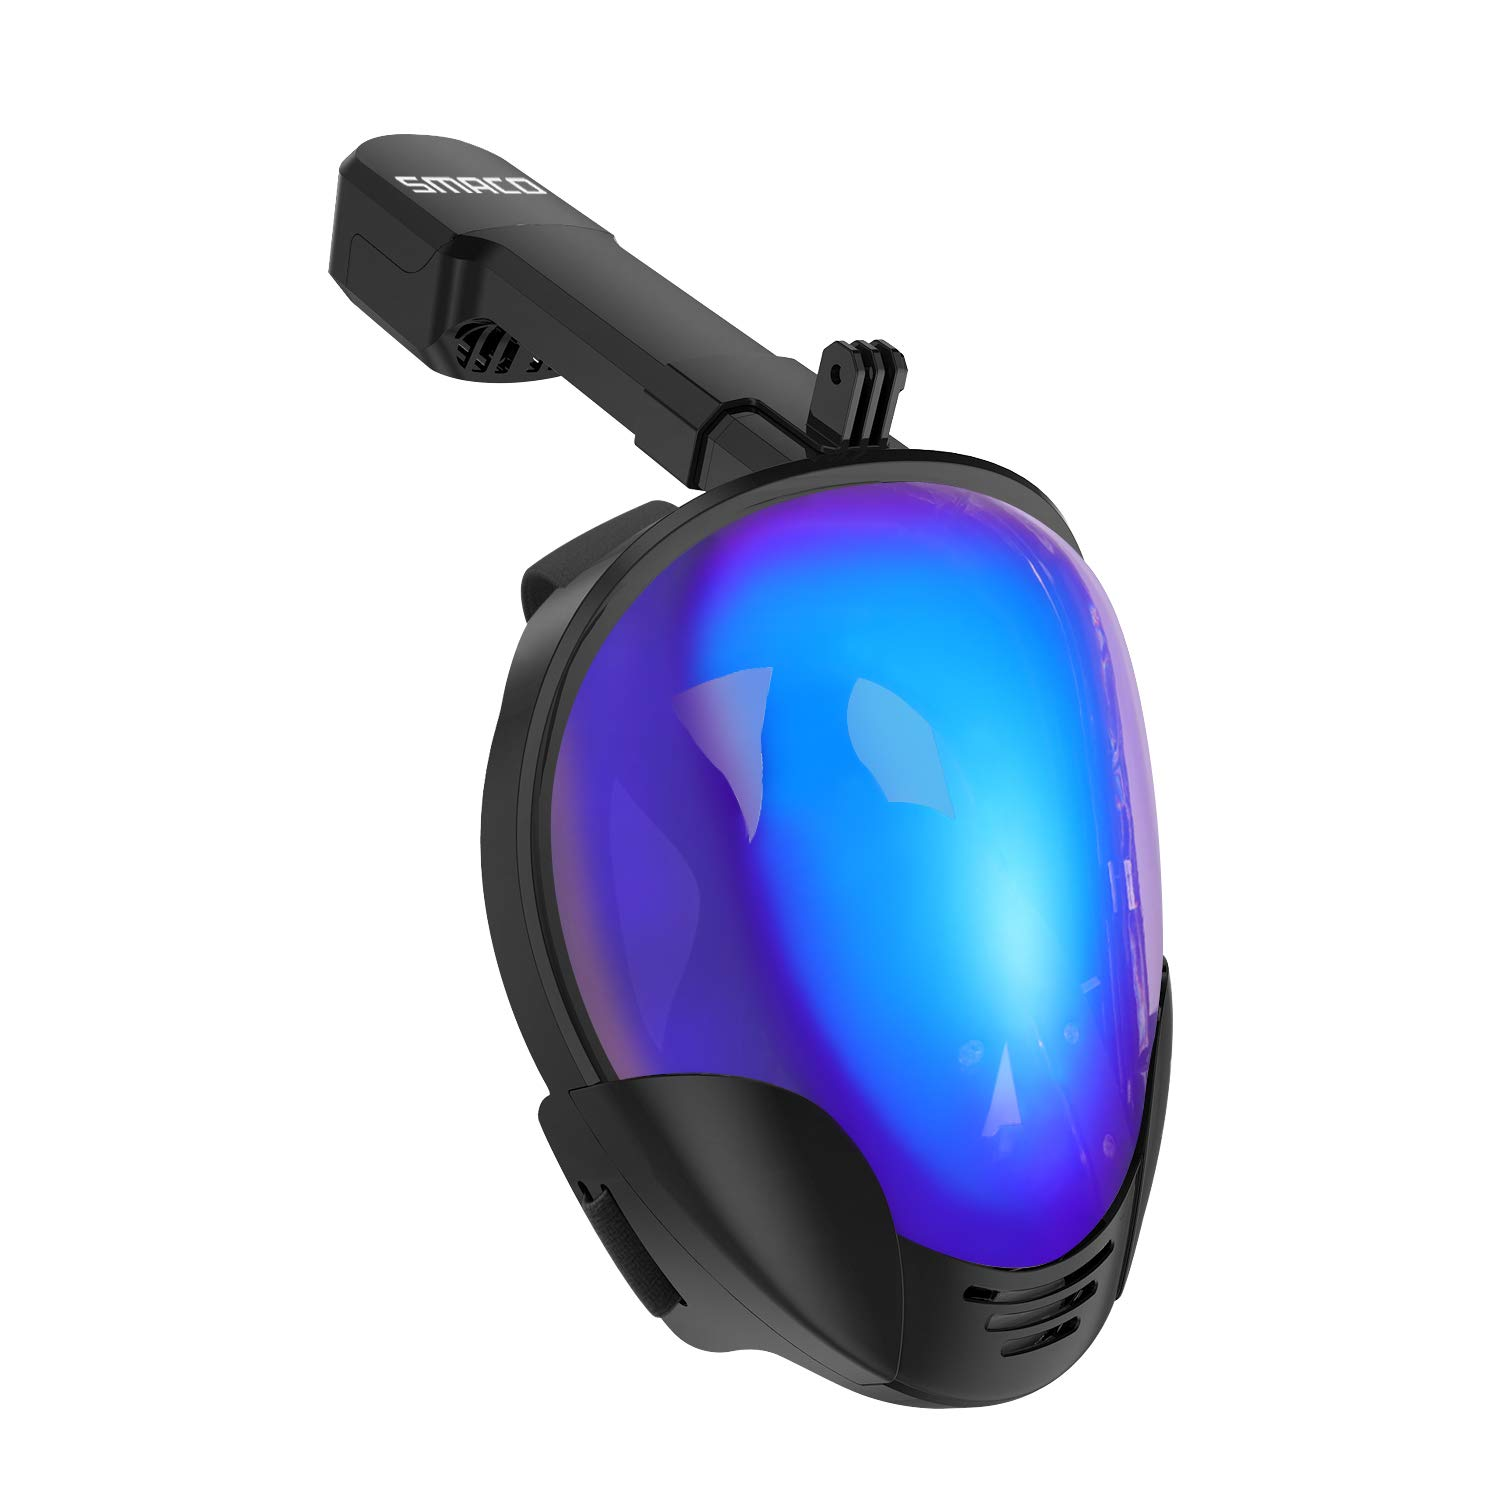 SMACO Full Face Snorkel Mask with UV Protection Anti-Fog Anti-Leak Snorkeling Mask with Detachable Camera Mount 180° Panoramic View Swimming Mask for Adults and Youth (Black/UV, Large/X-Large) by SMACO